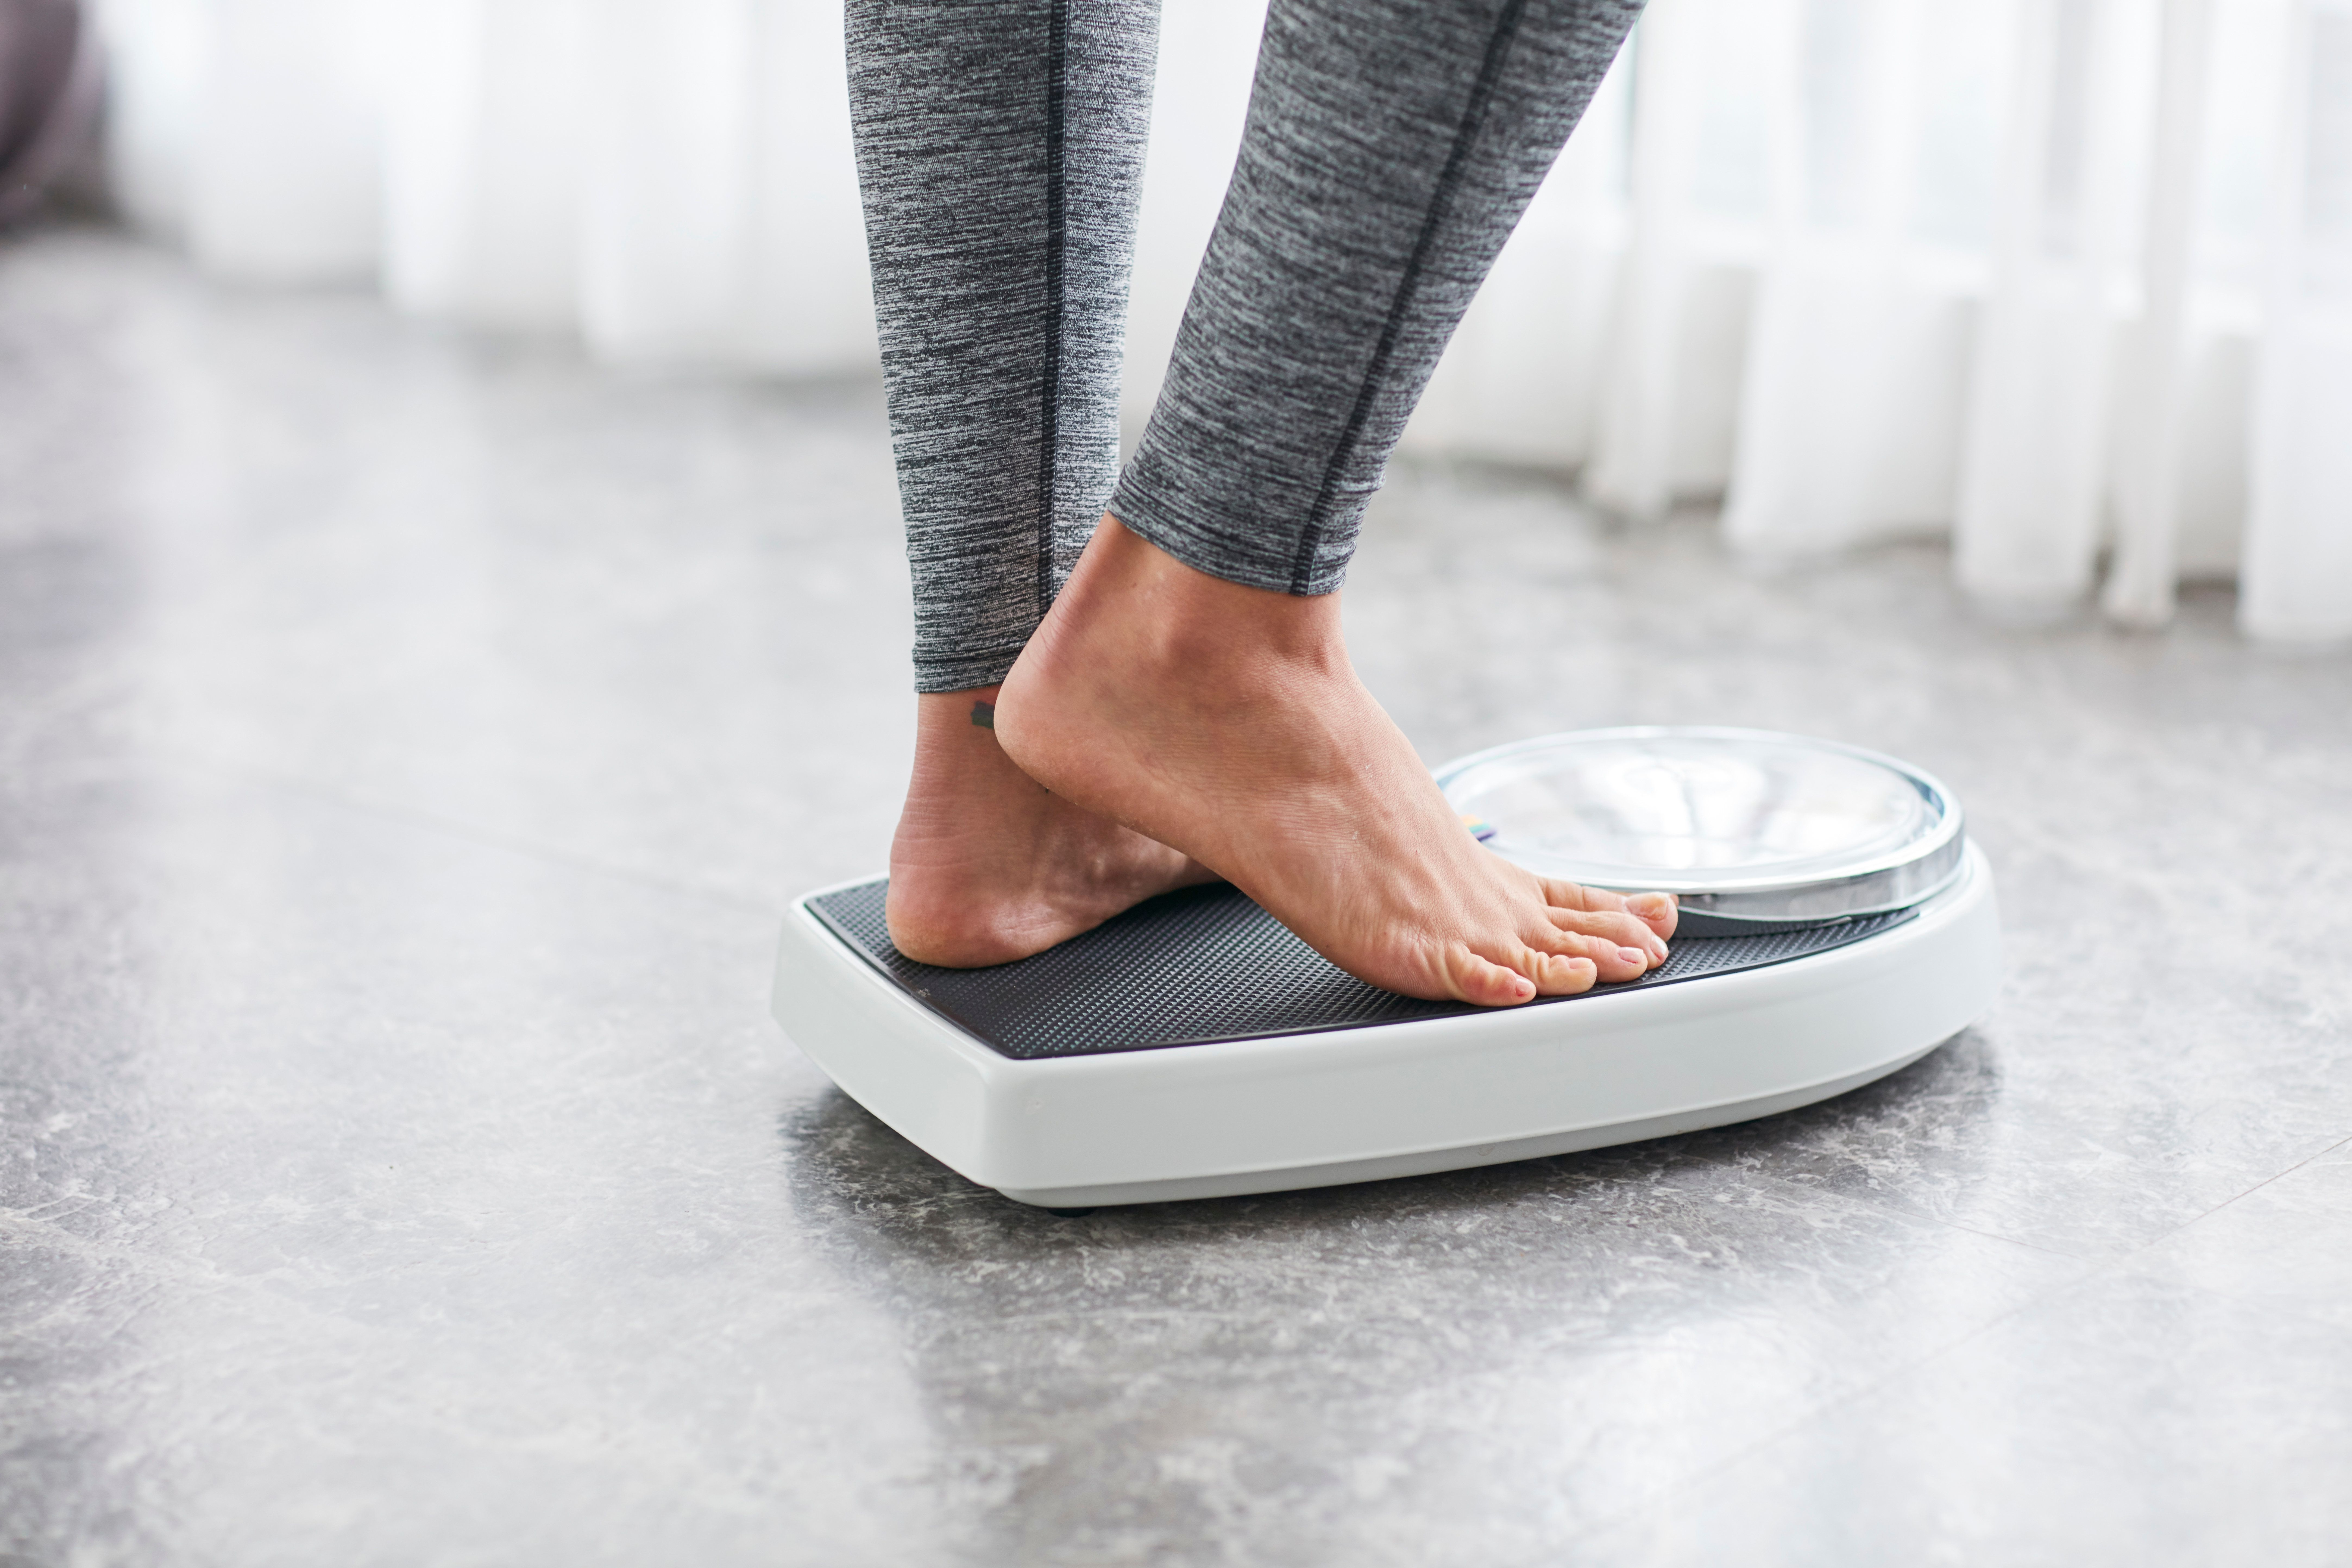 Thin people: it's down to your genes, not because you're 'morally superior'